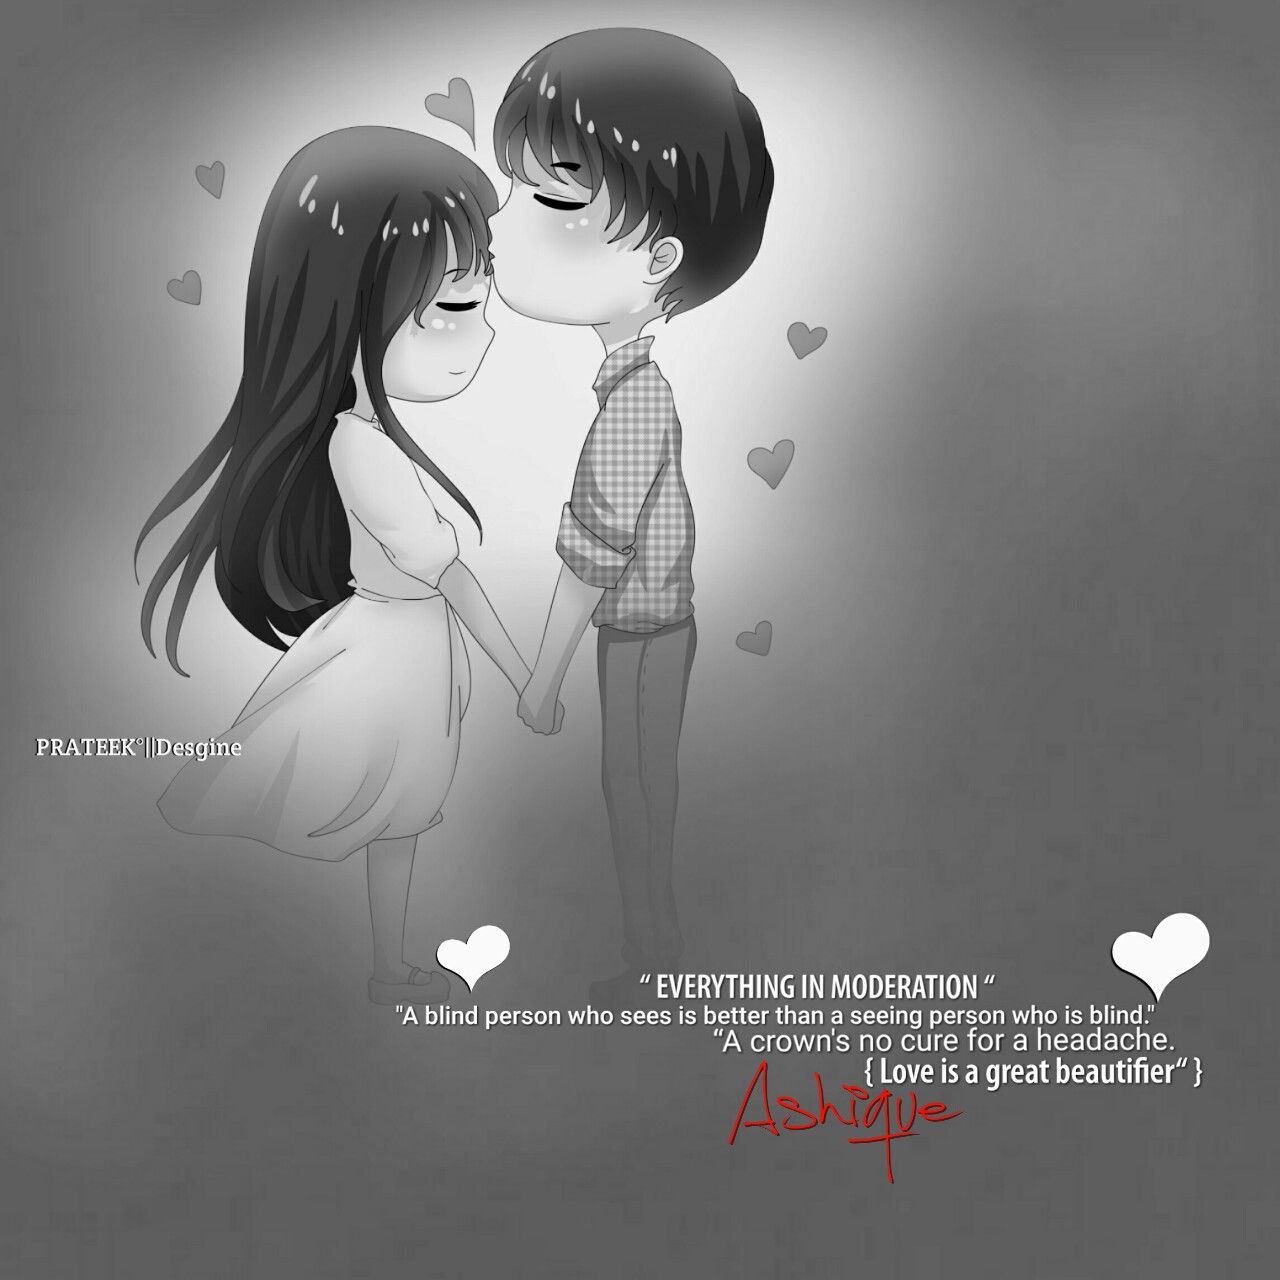 Pin By Chint R On Couple Editz Dp Couple Cartoon Cute Love Romantic Couples